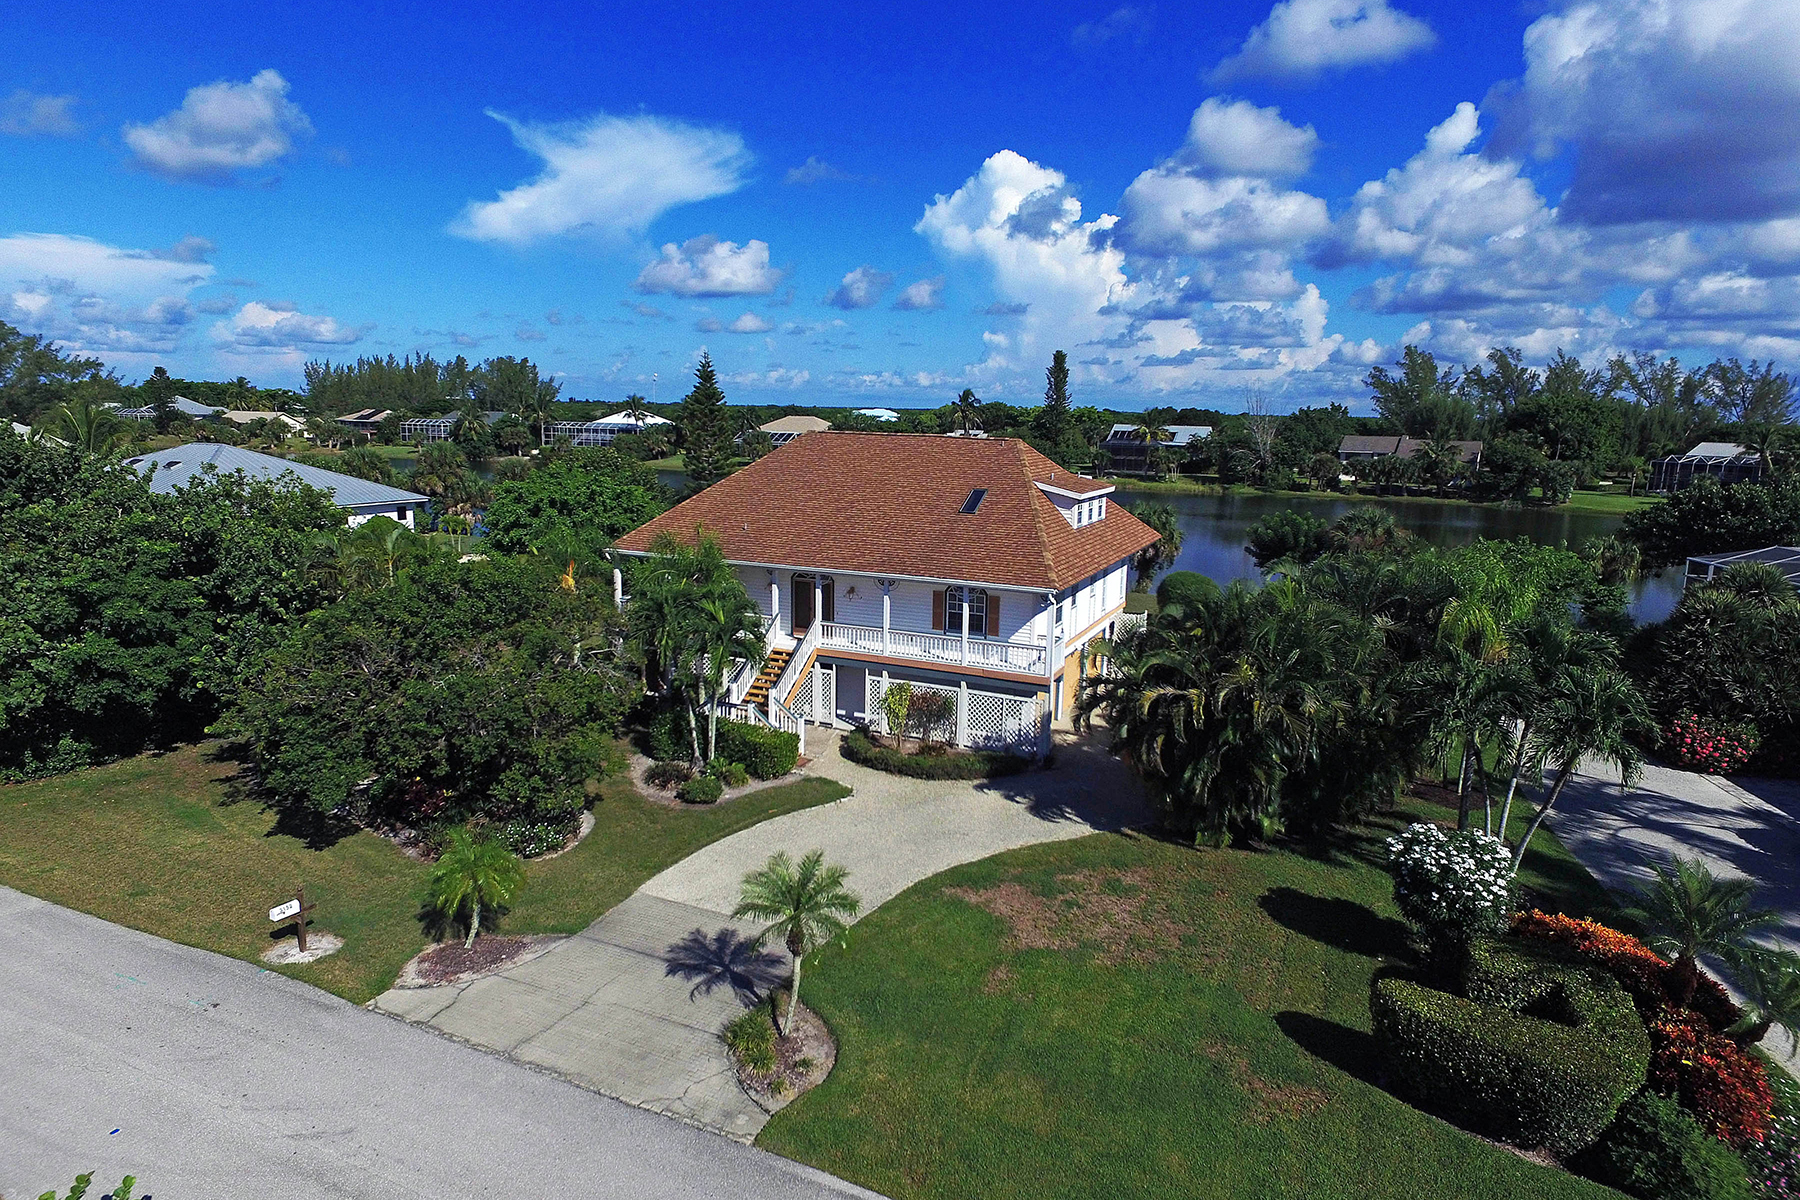 Maison unifamiliale pour l Vente à SANIBEL 3152 Twin Lakes Ln Sanibel, Florida, 33957 États-Unis